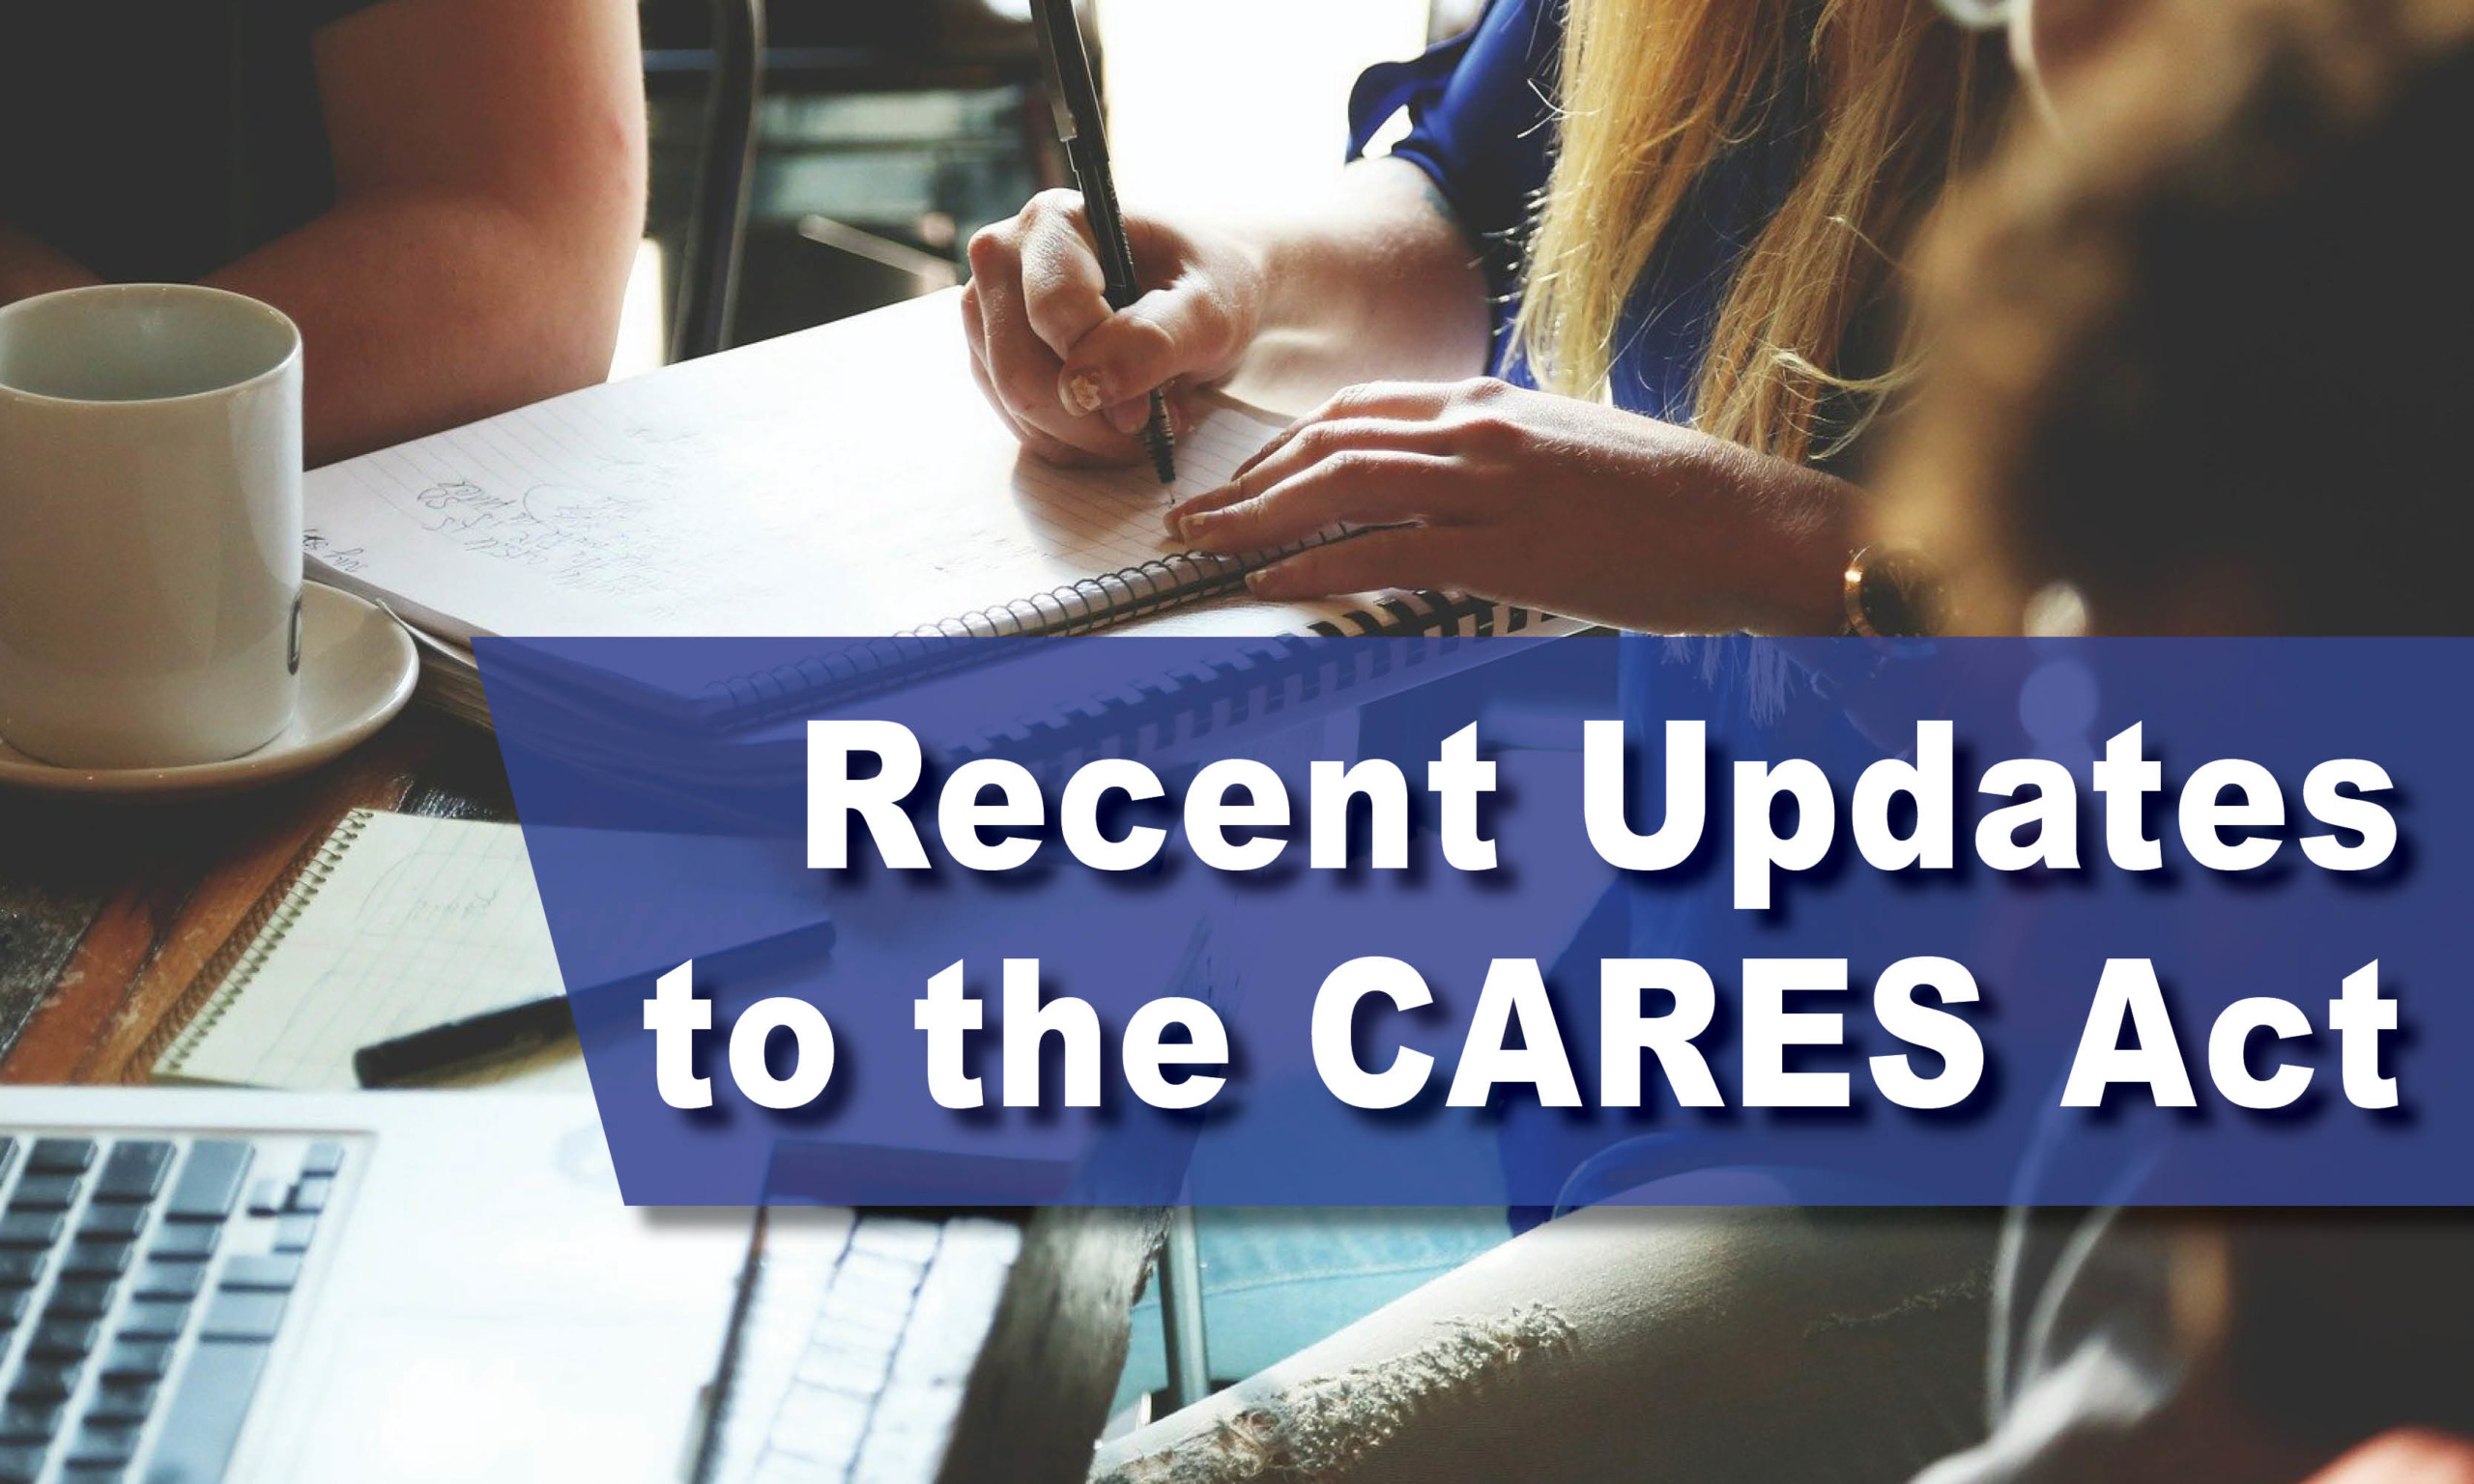 Recent Updates to the CARES Act